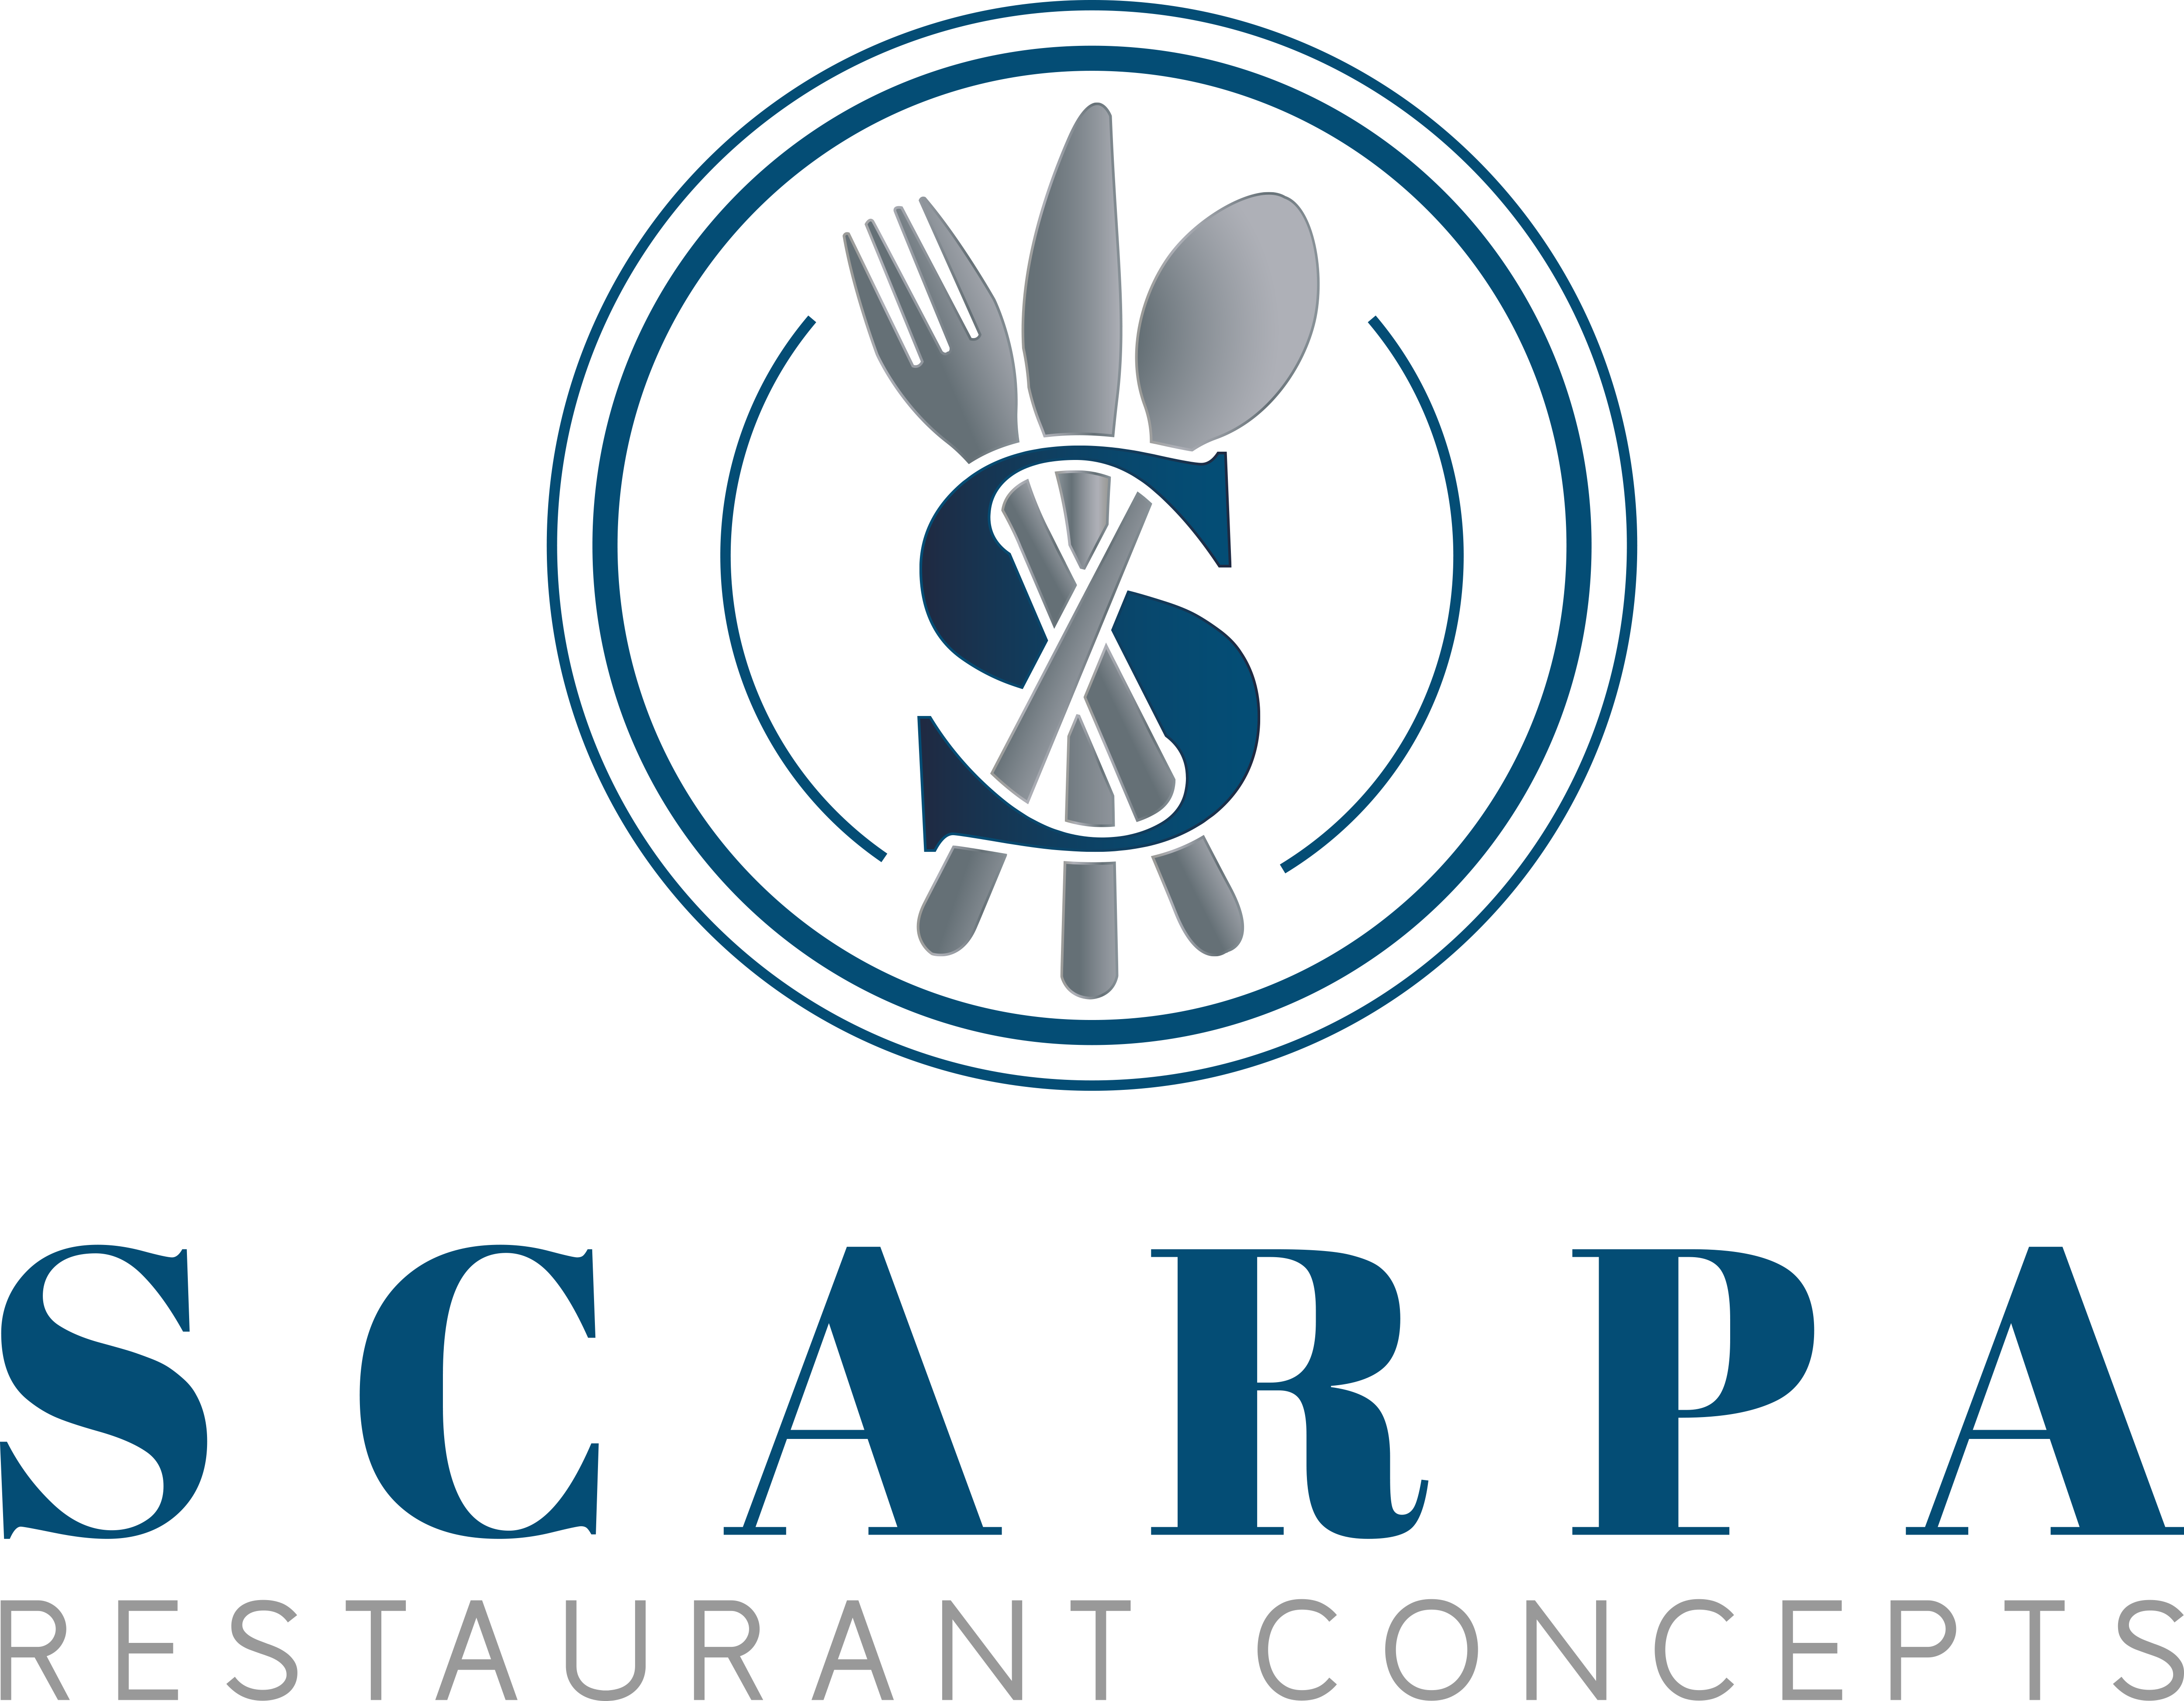 Scarpa Restaurant Concepts needs a logo, please.